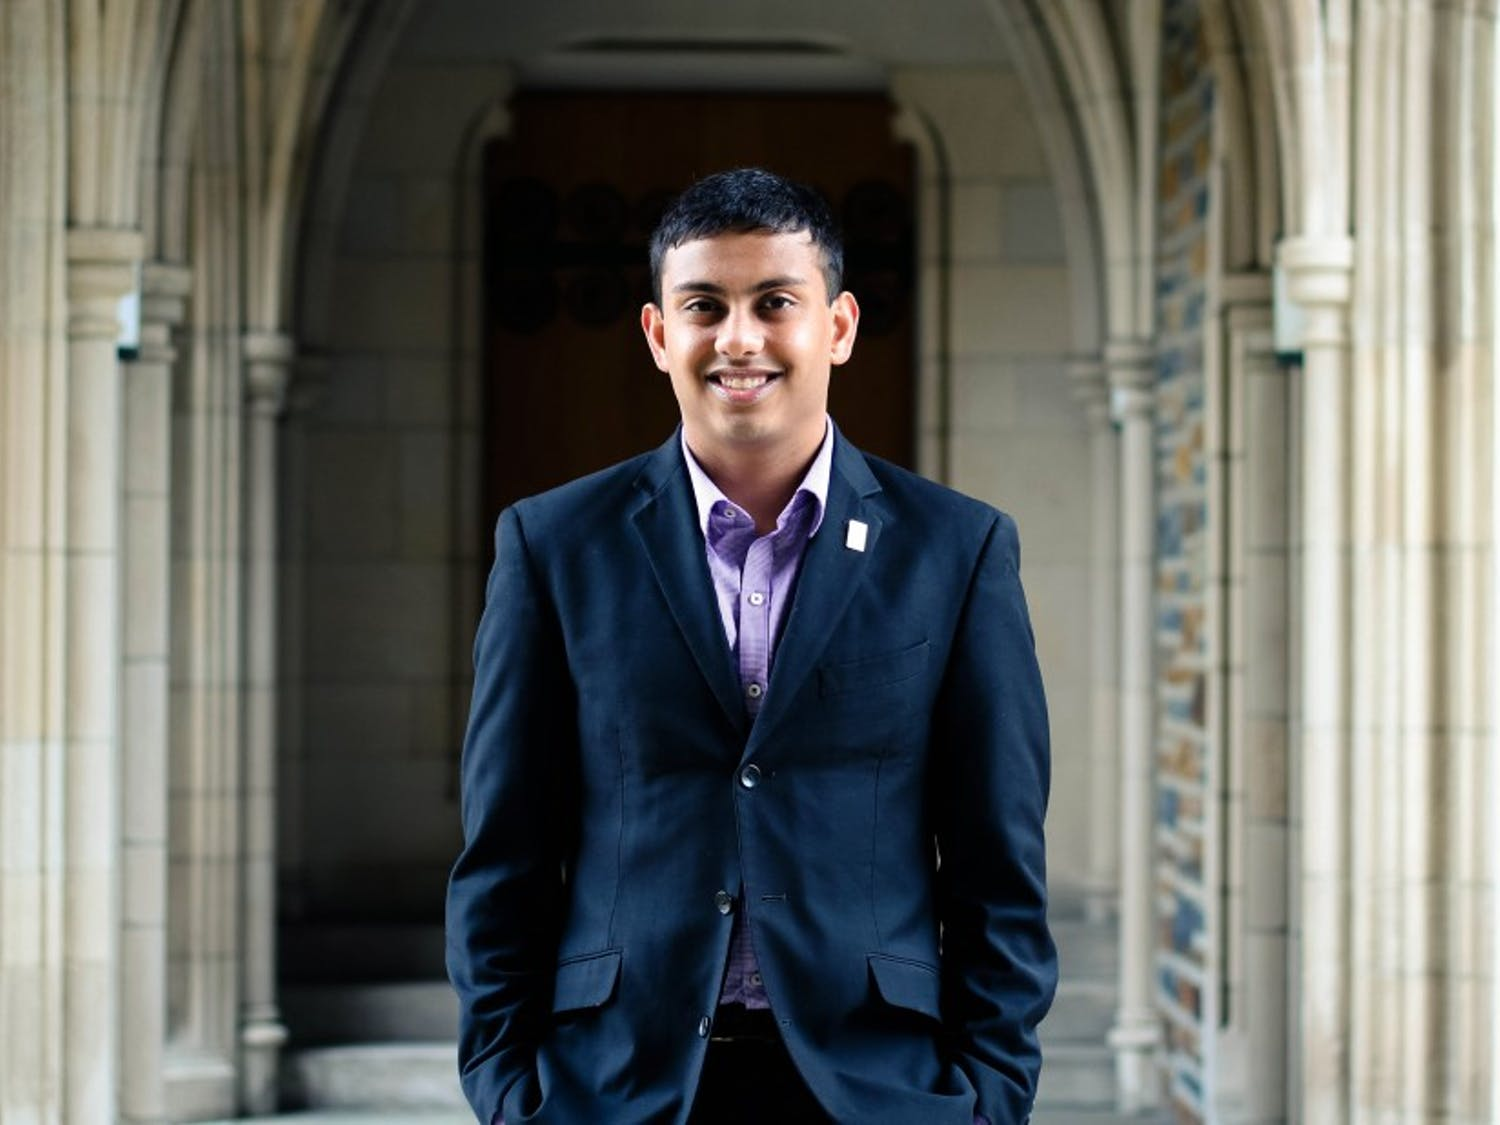 Sophomore Abhi Sanka has been involved in DSG for the past two years as a senator for residential life.